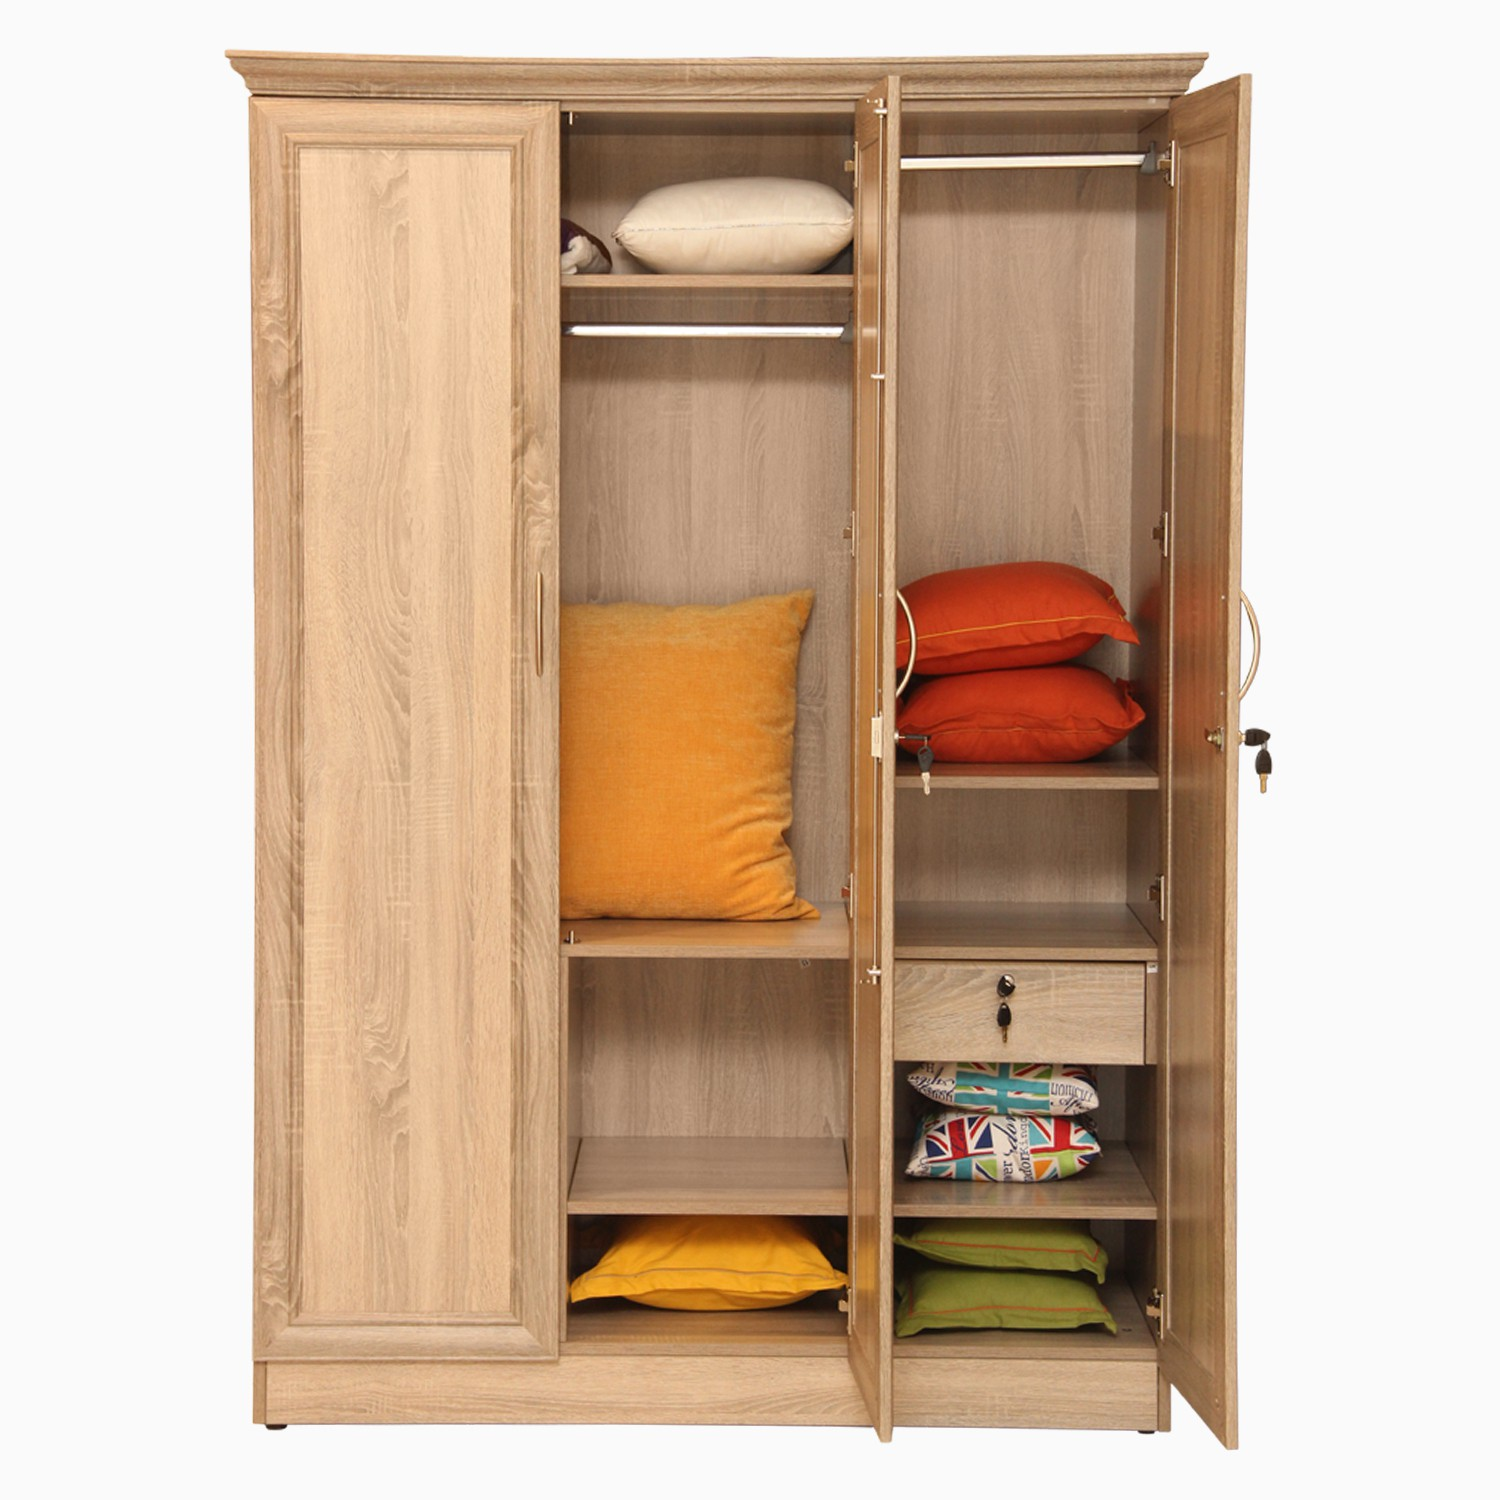 Storage Units Price List In India 16 06 2017 Buy Storage Units Online: godrej interio home furniture price list